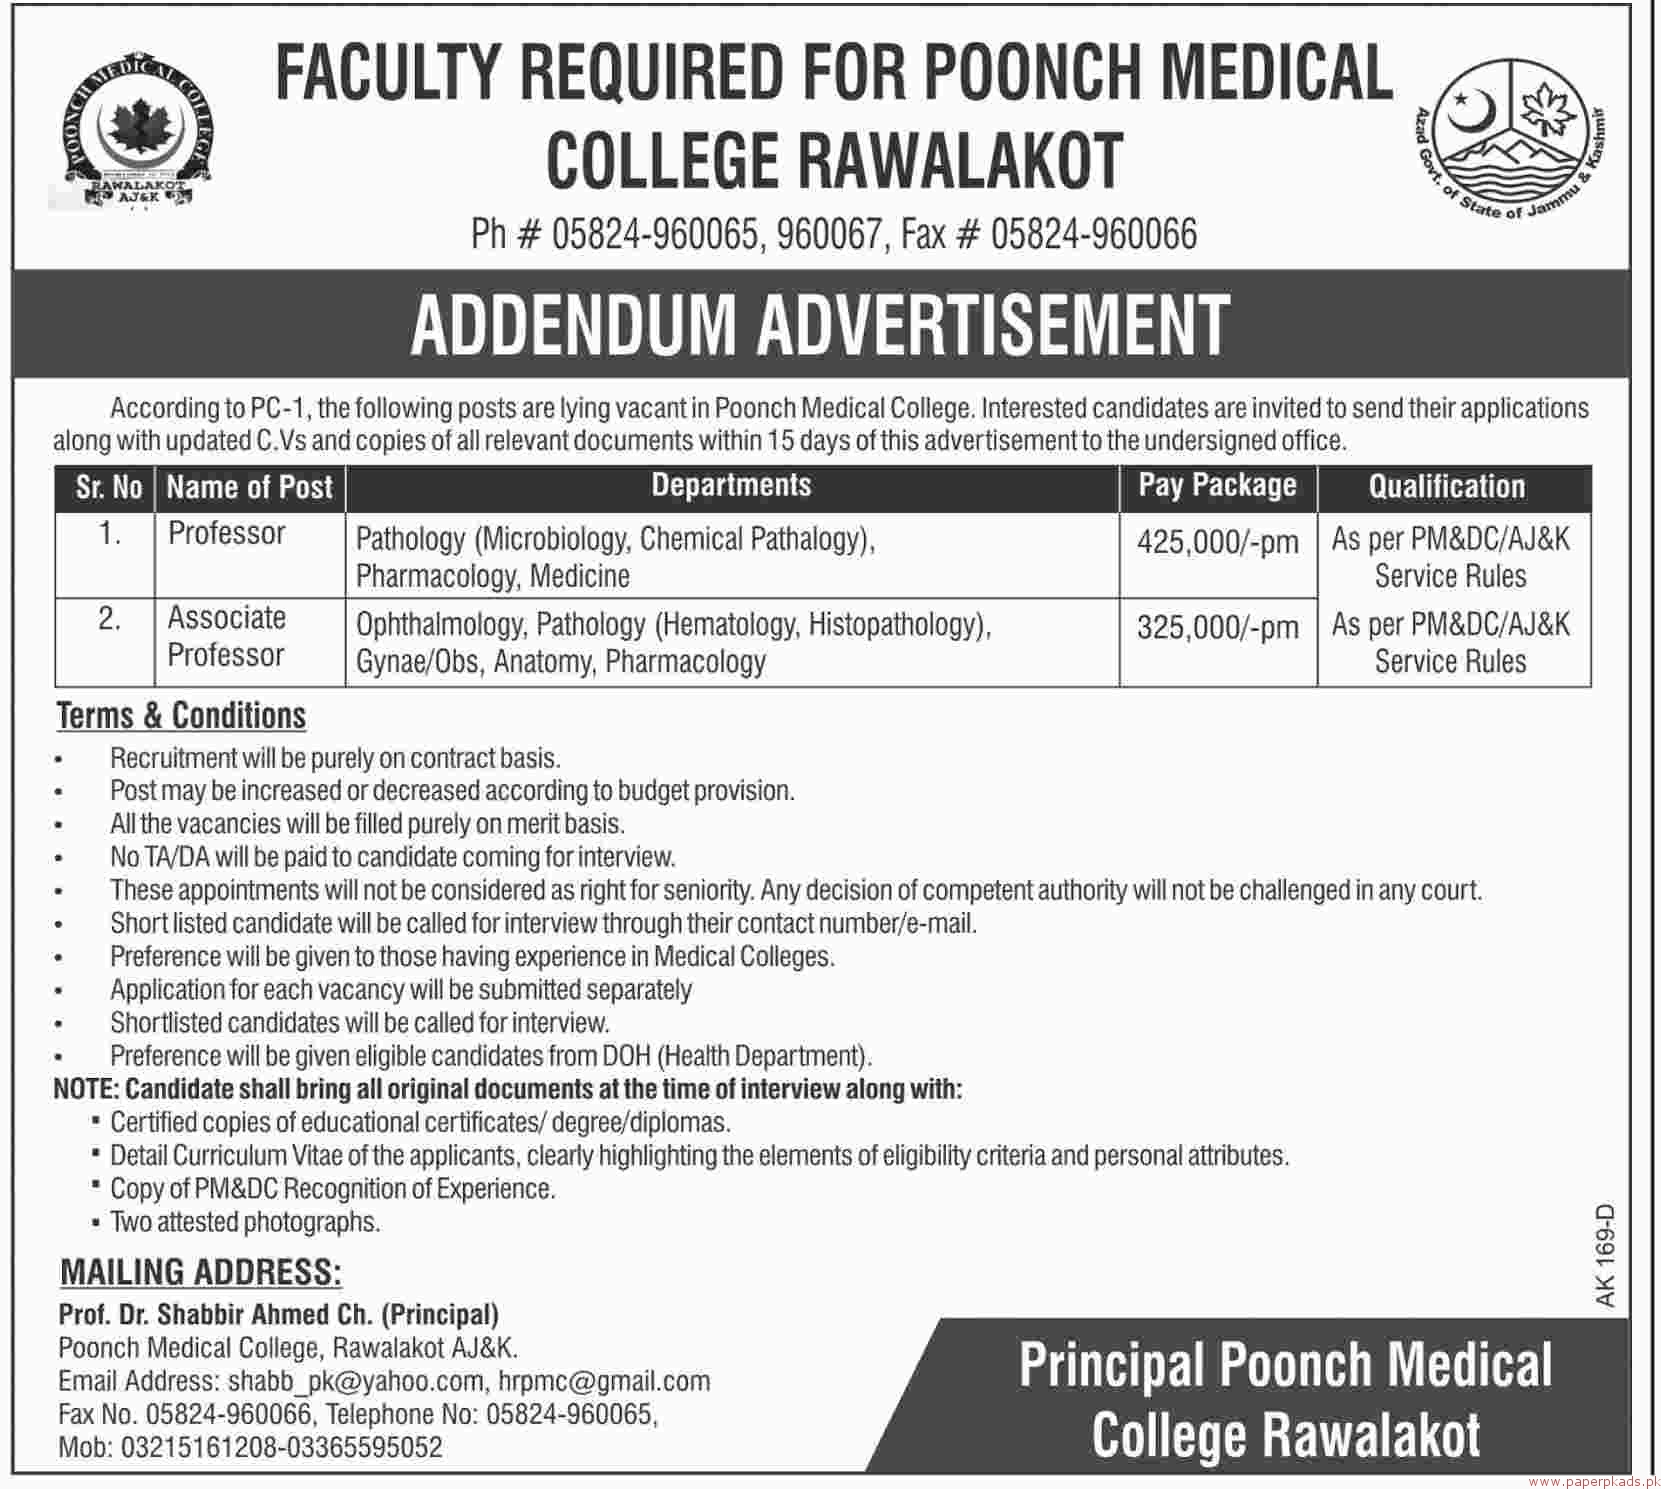 Poonch Medical College Rawalkot Jobs 2018 Latest